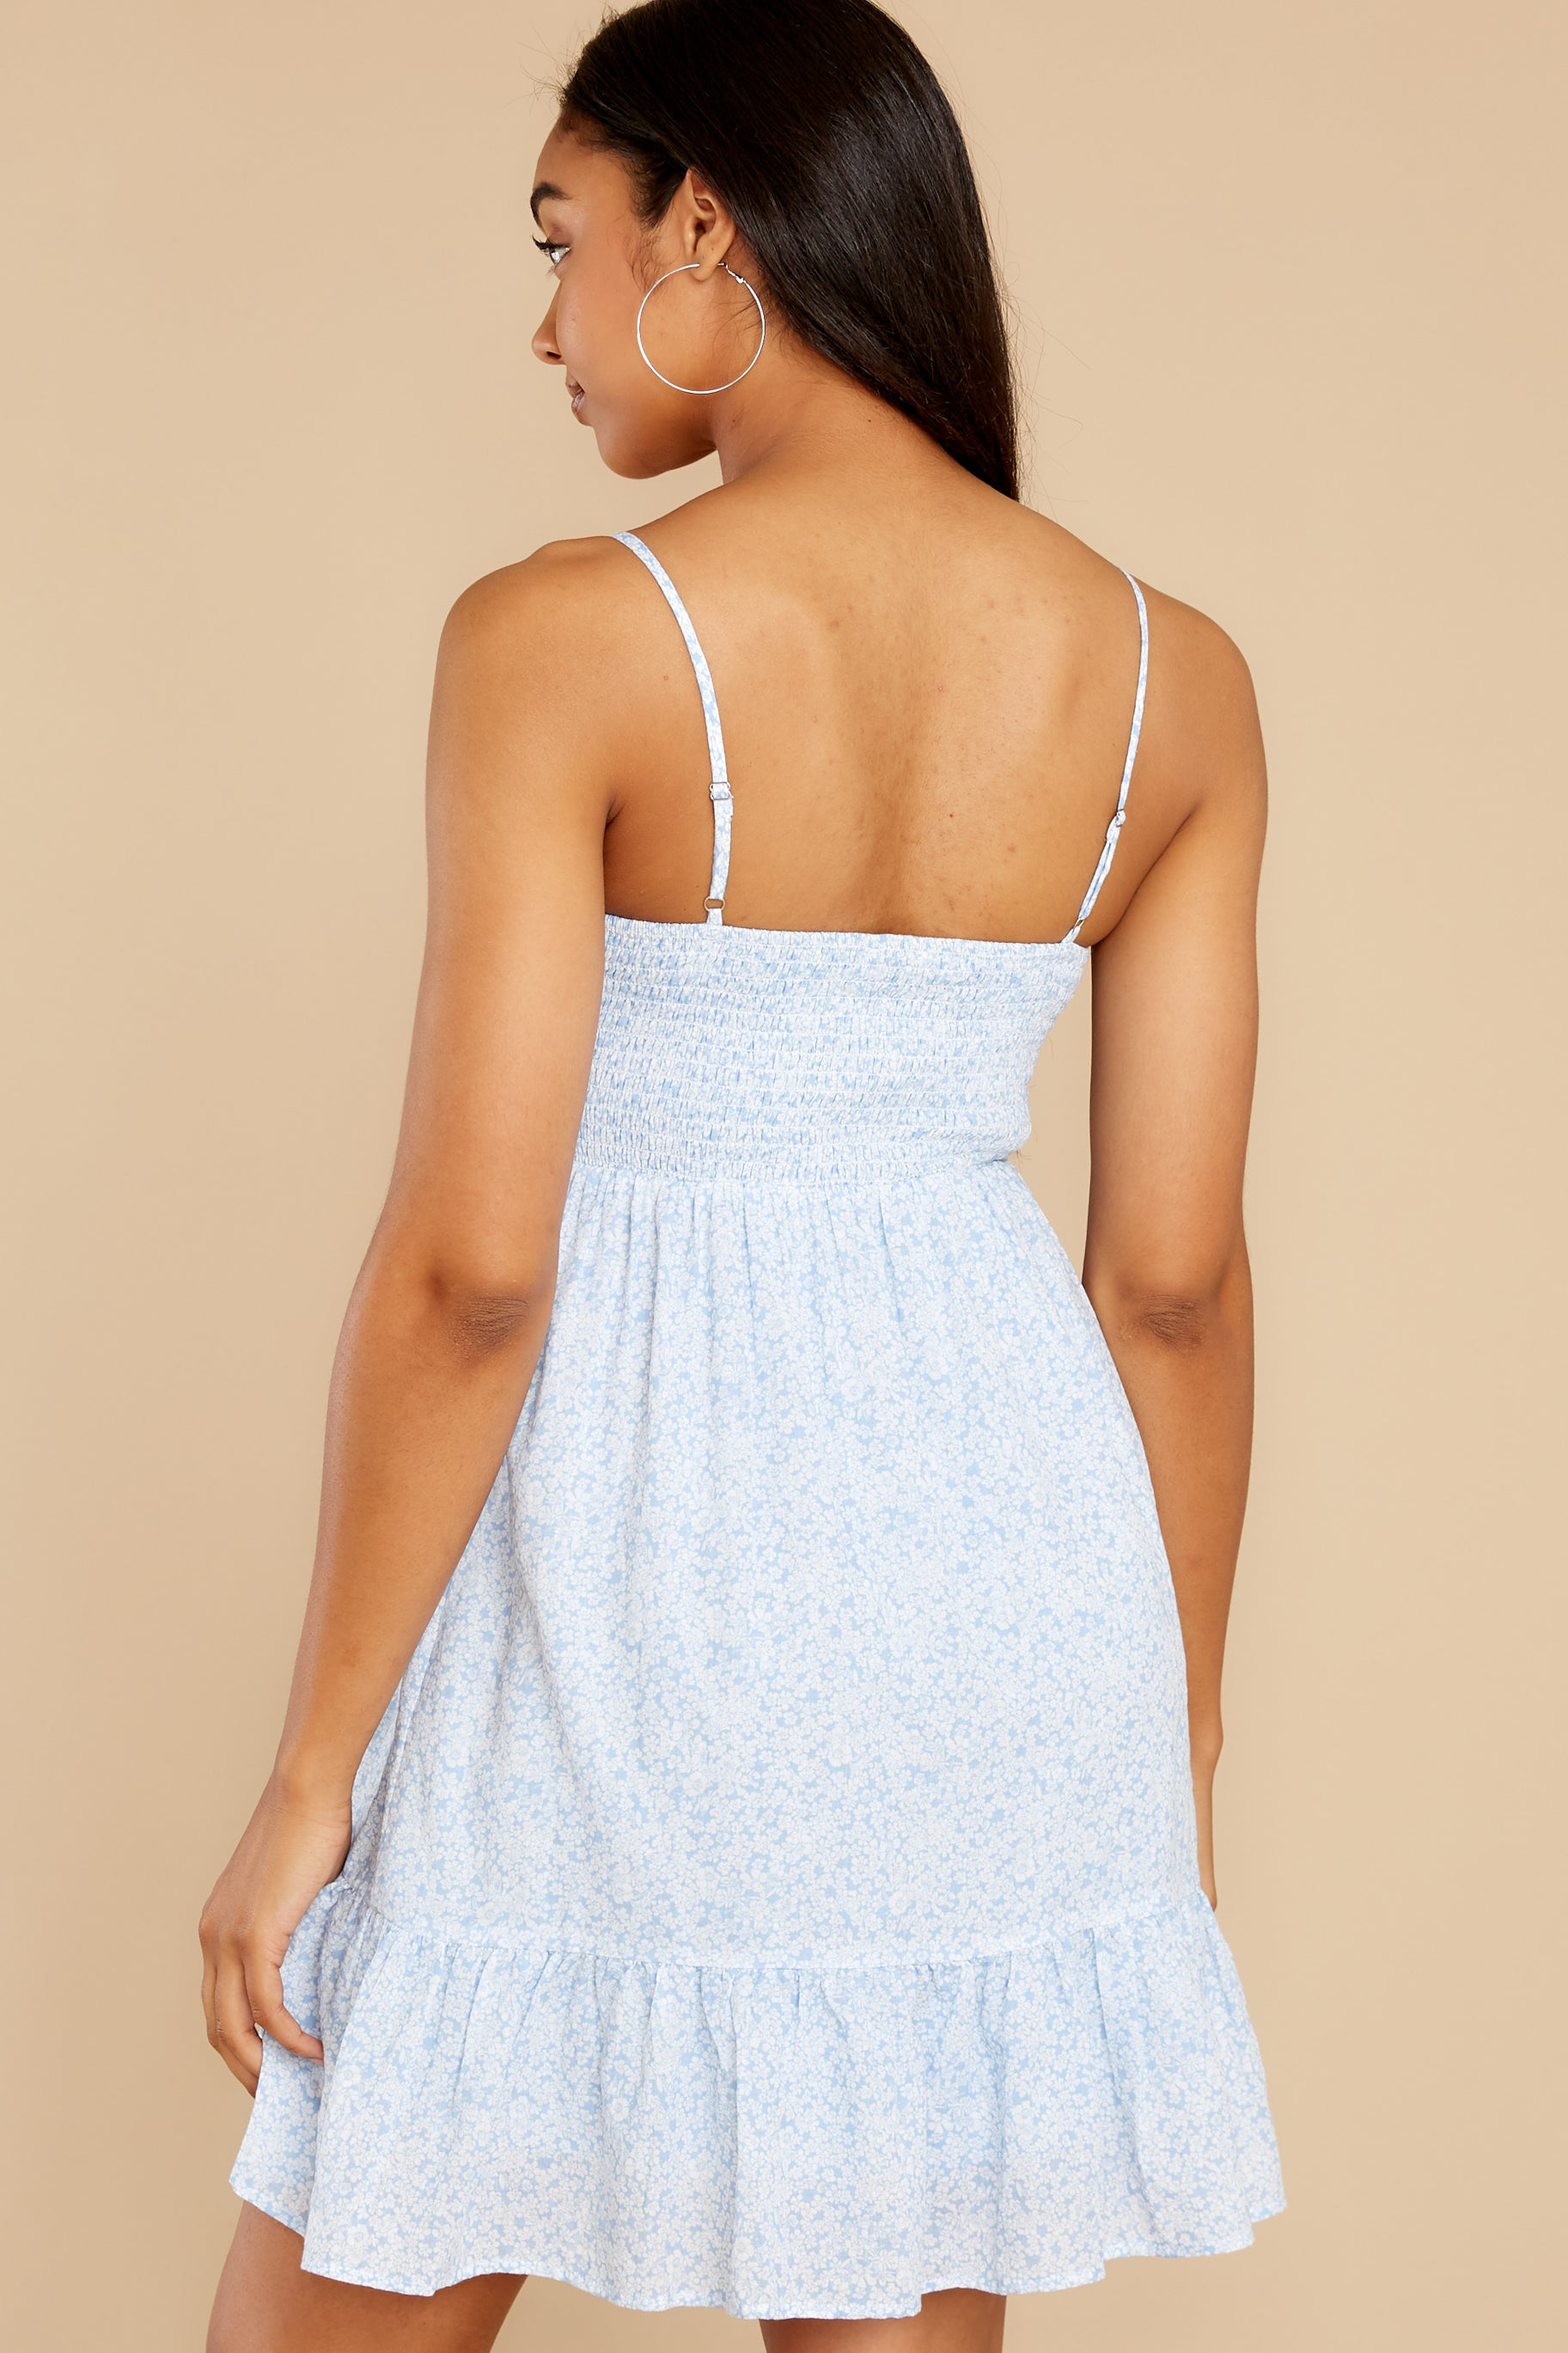 7 Forward Thinking Light Blue Floral Print Dress at reddress.com